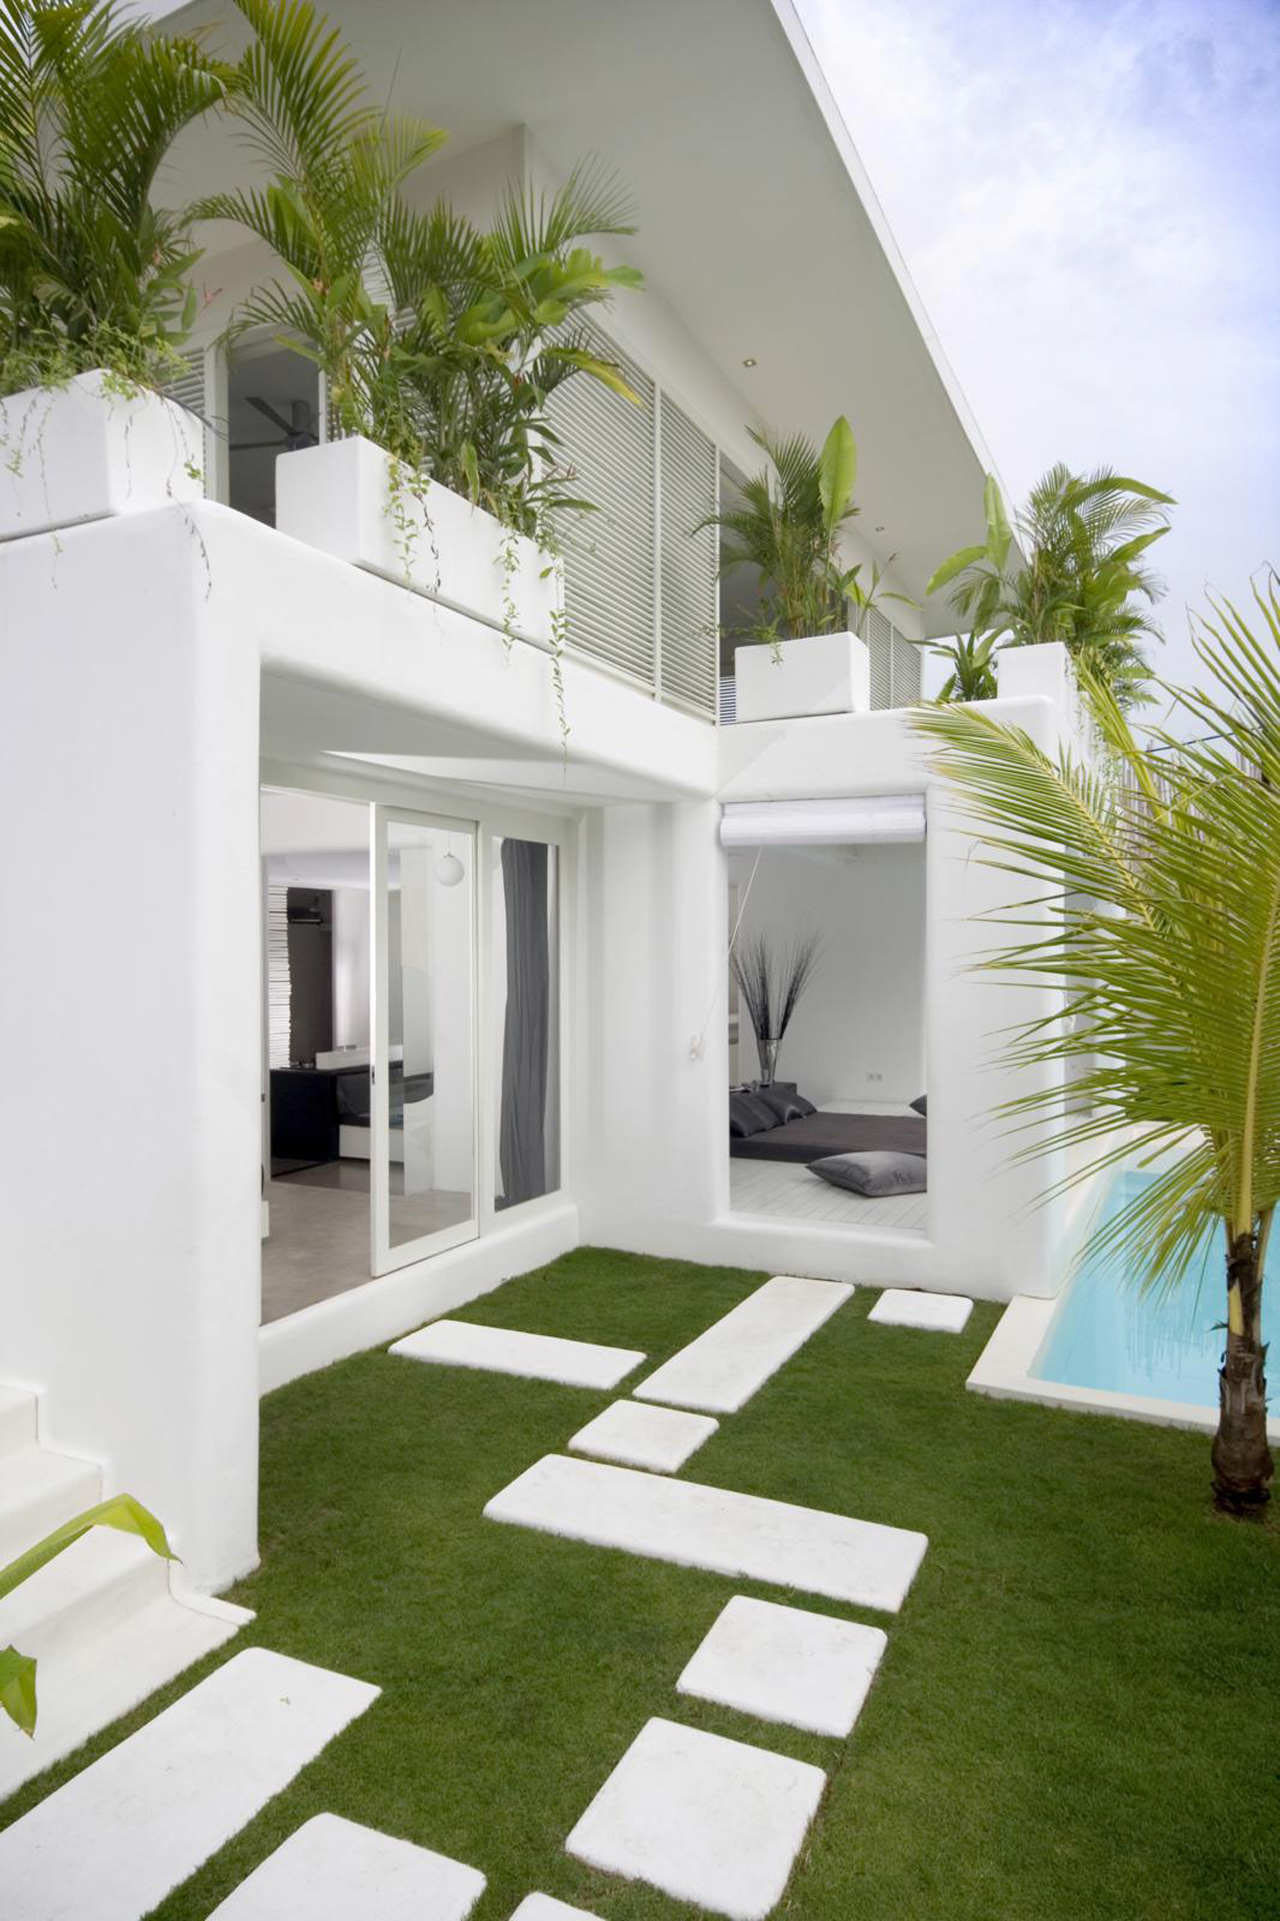 Contemporary Villa In Bali With Overlapping Functional Spaces ...